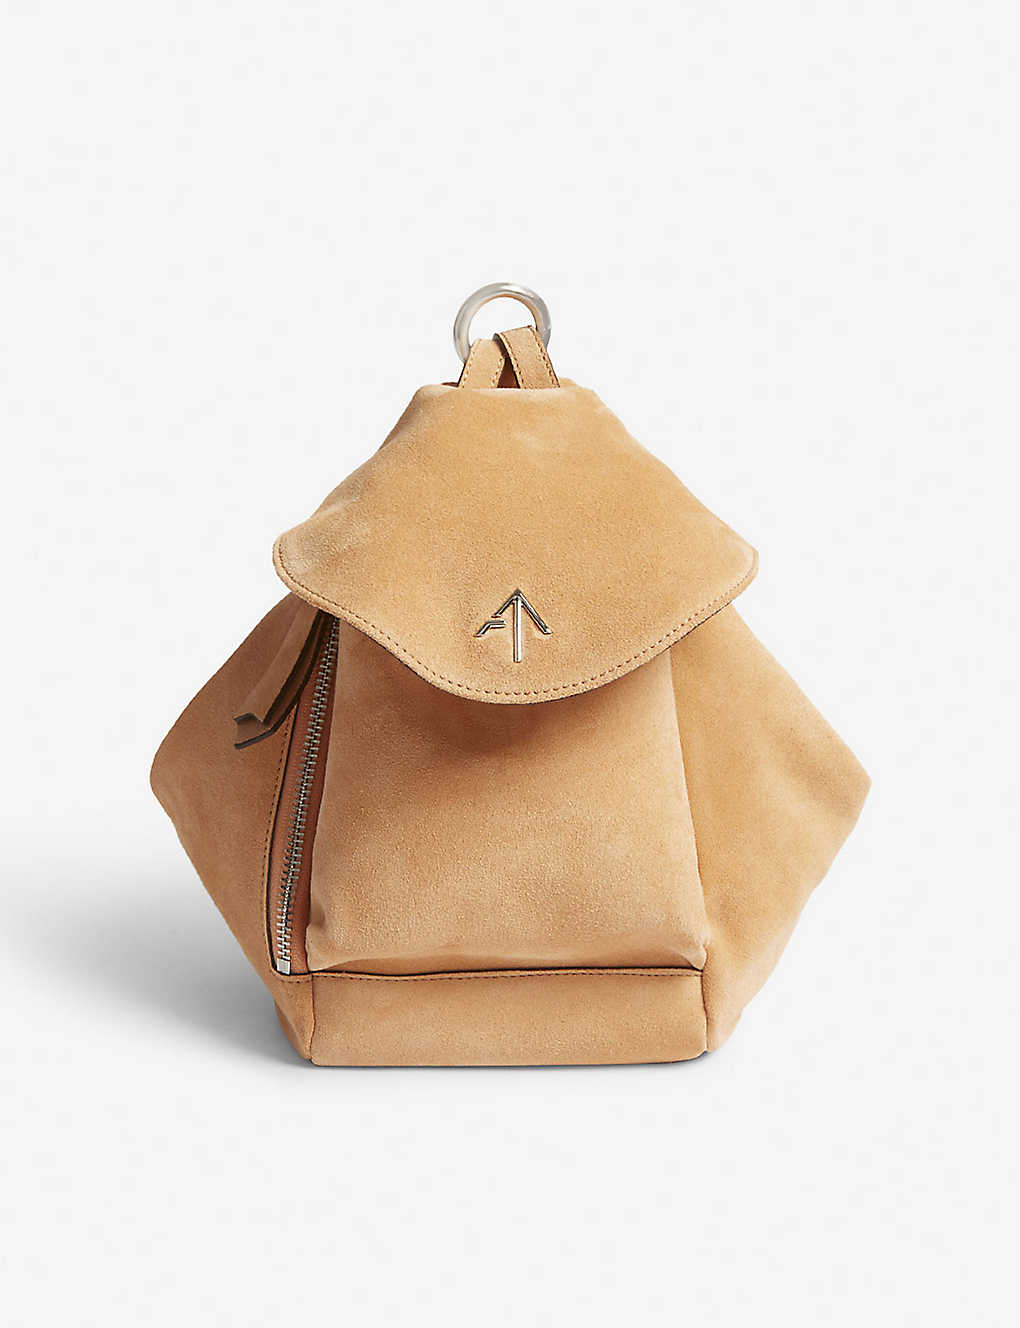 Manu Atelier beige backpack